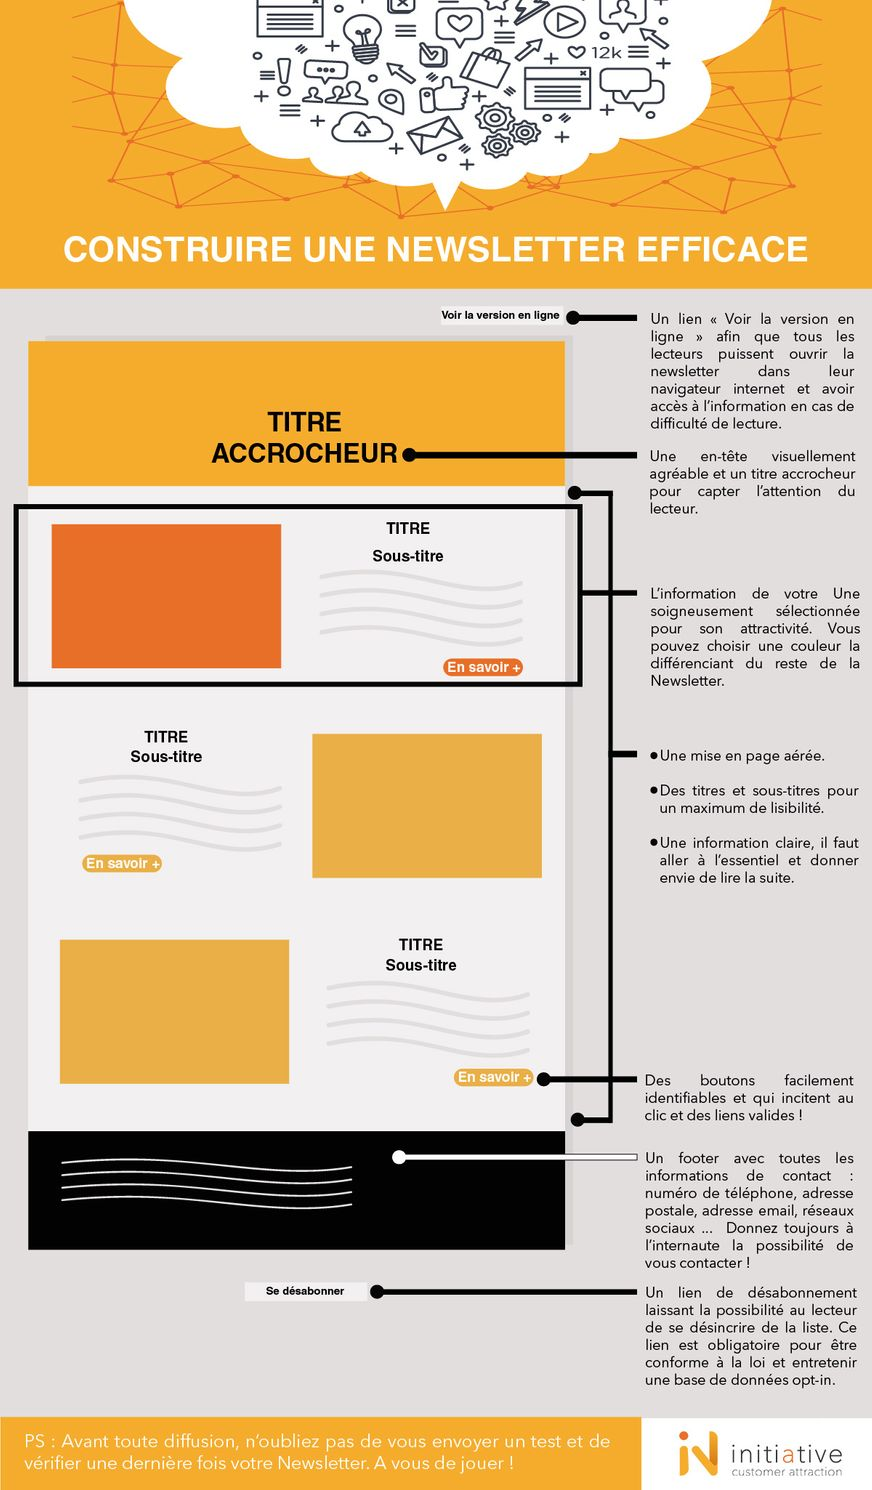 Infographie, une newsletter efficace